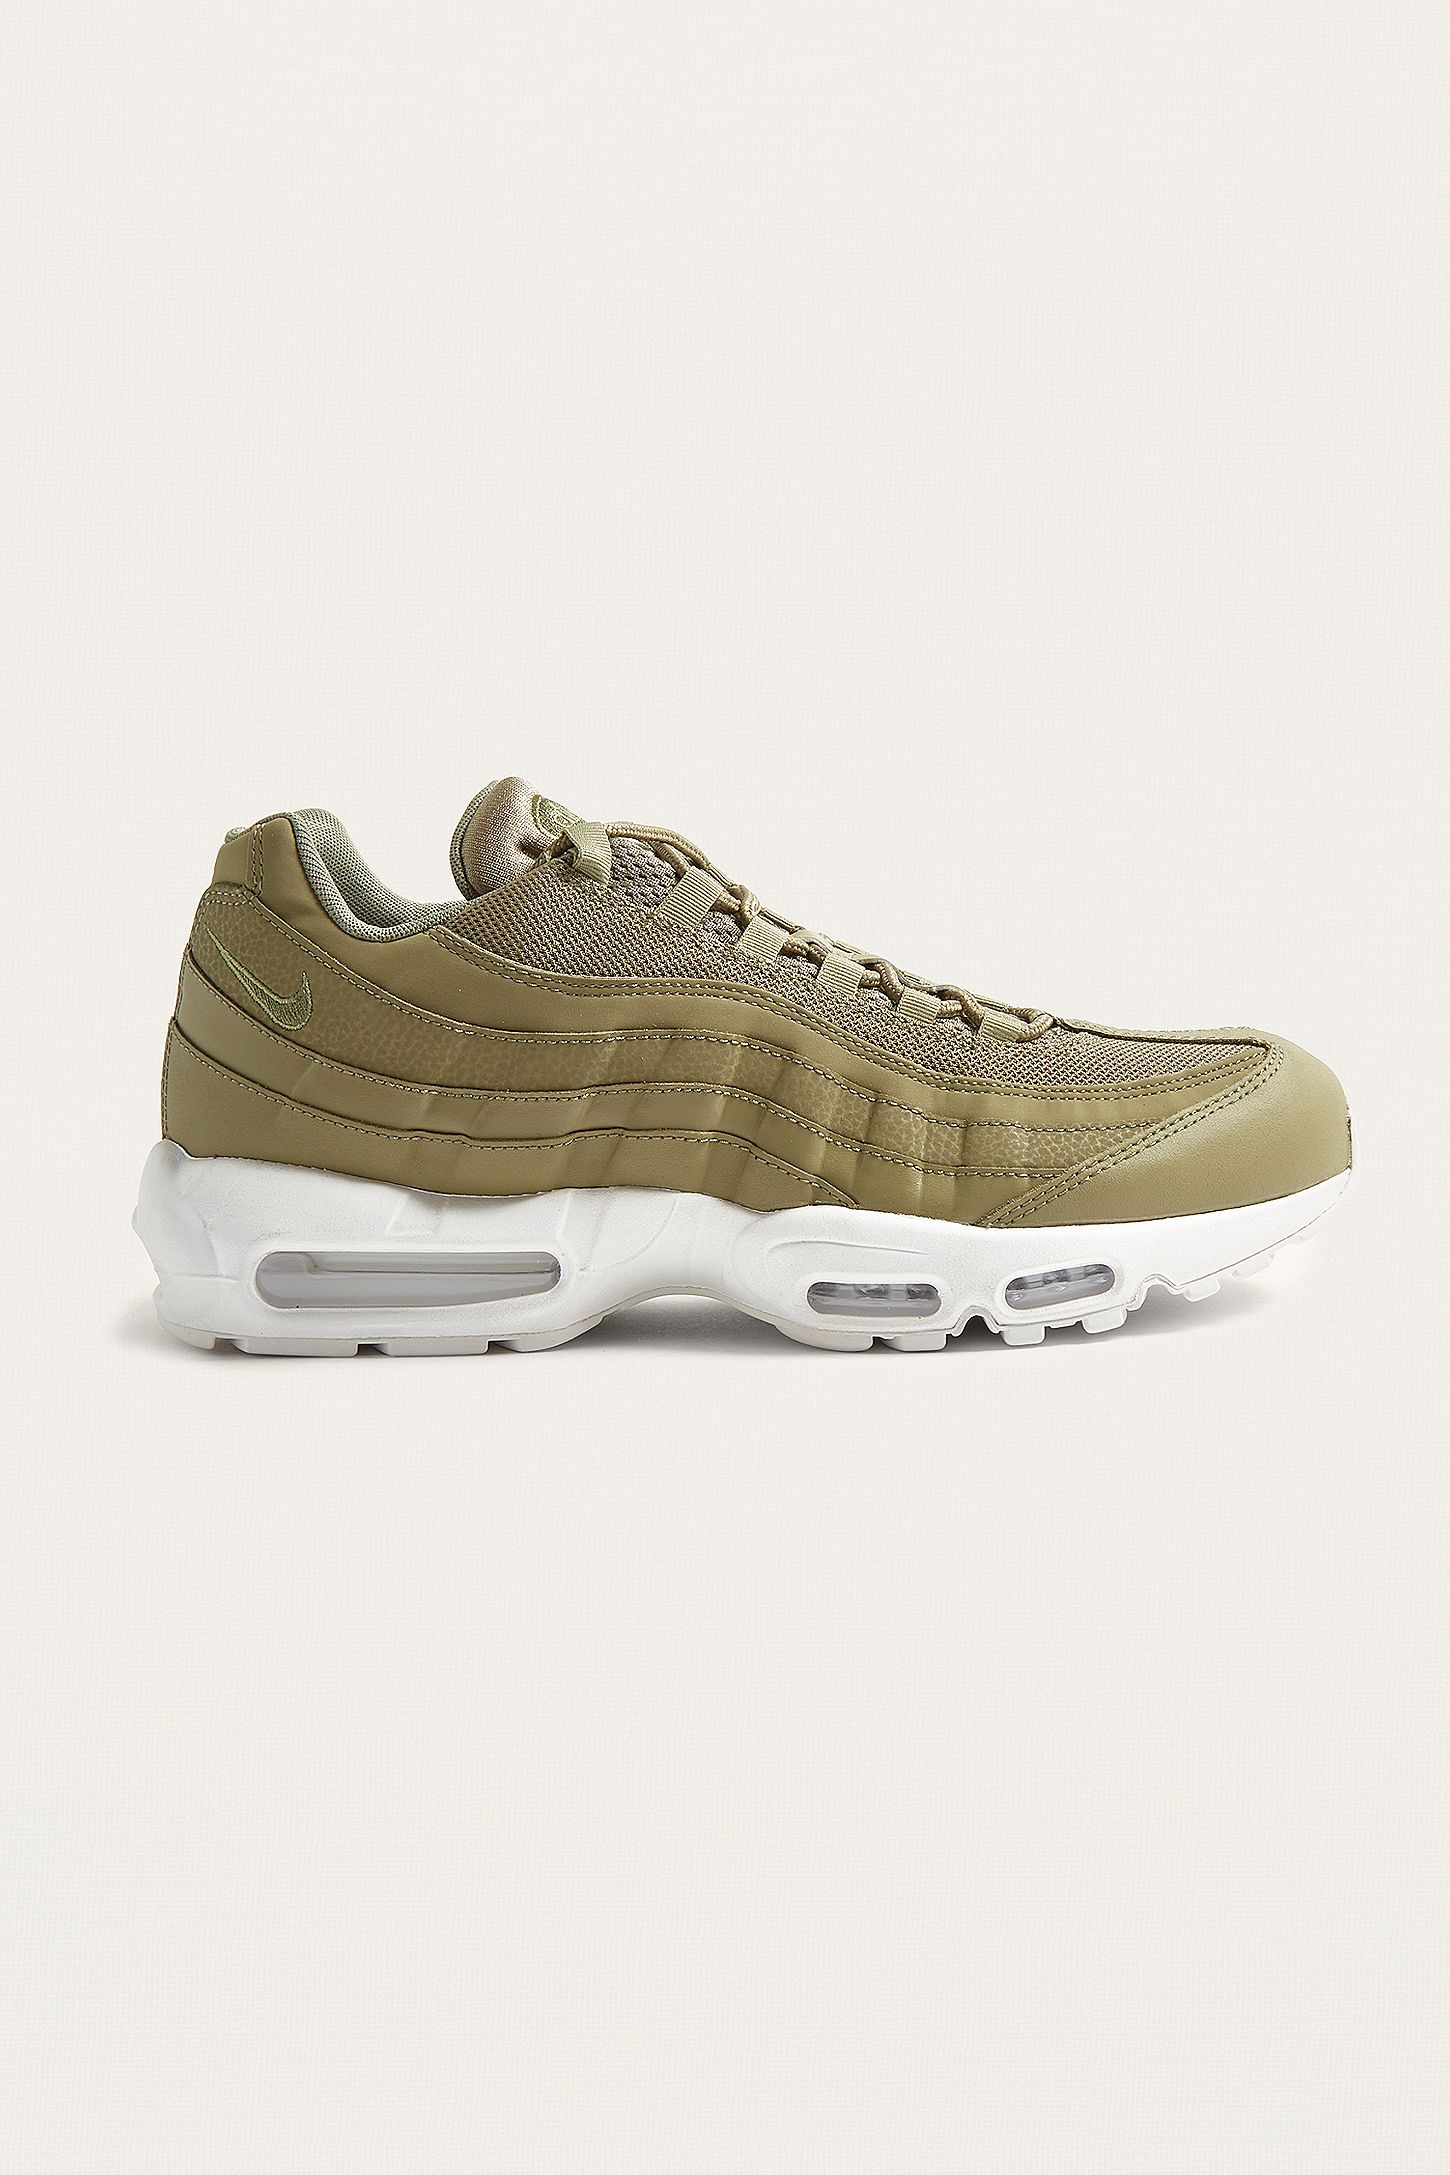 new style 1c420 d8a84 Nike Air Max 95 Essential Trainers. Click on image to zoom. Hover to zoom.  Double Tap to Zoom